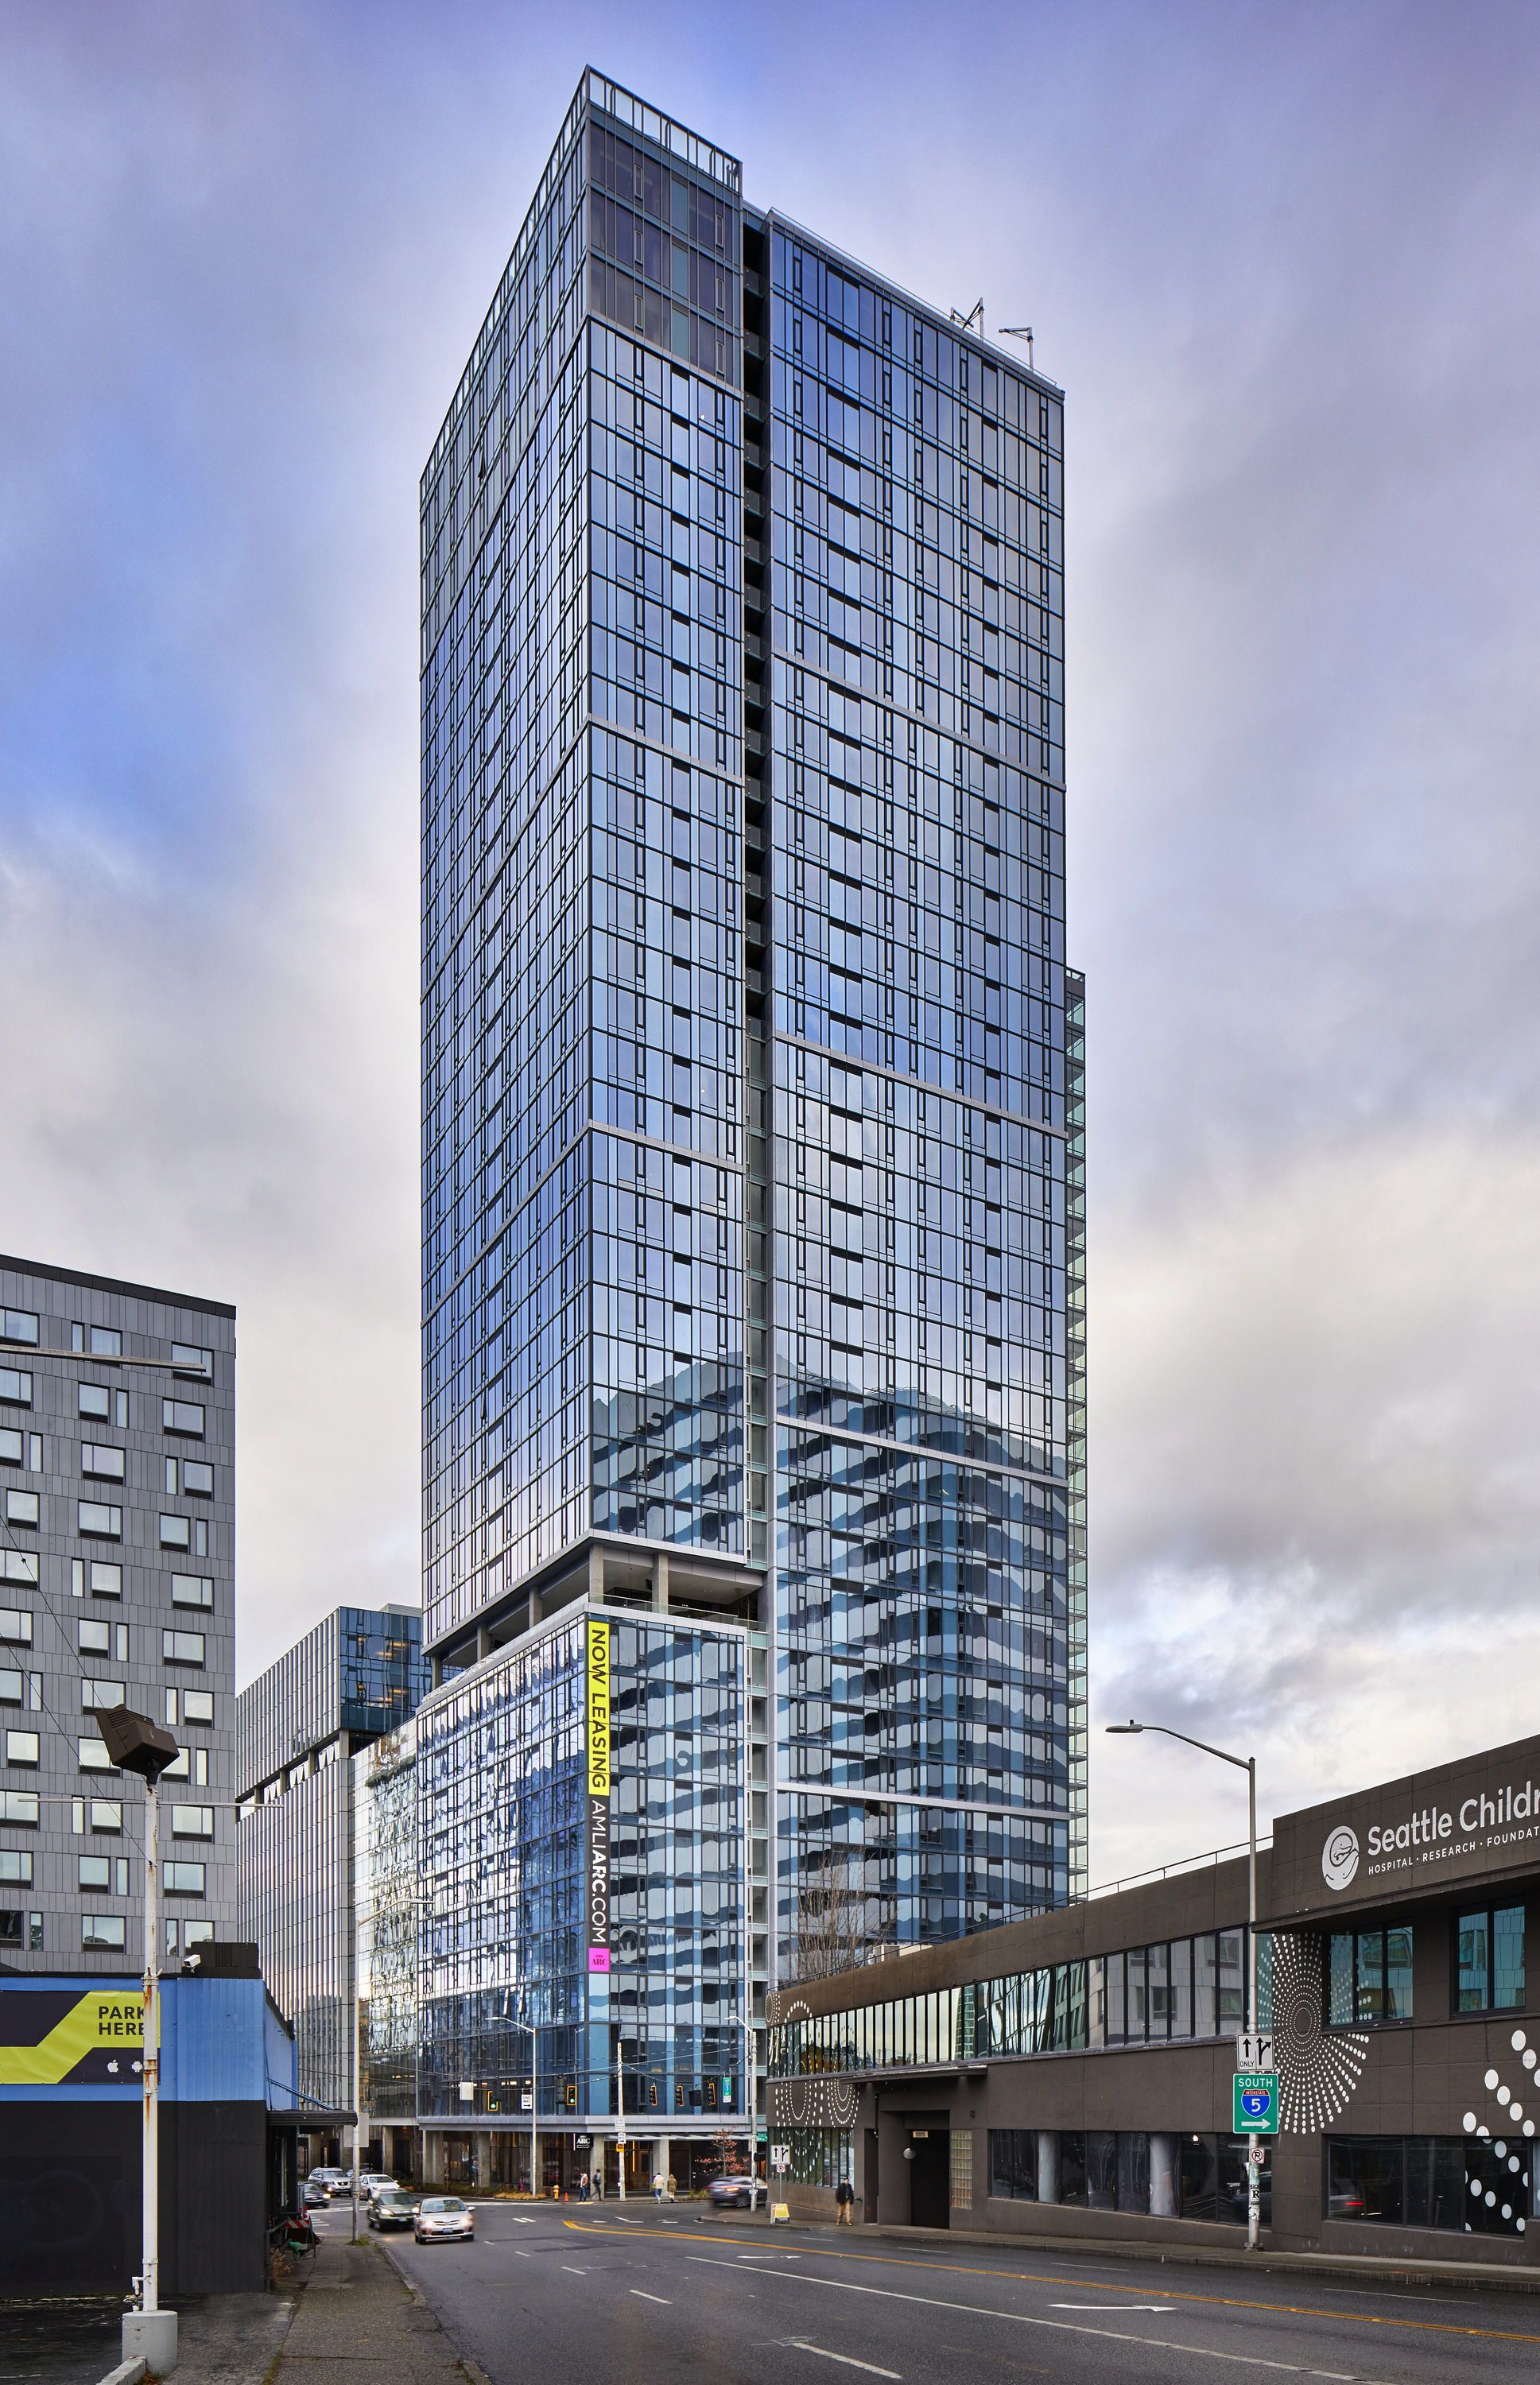 AMLI Arc Is A Brand New, 41 Story Apartment Tower In The Thick Of